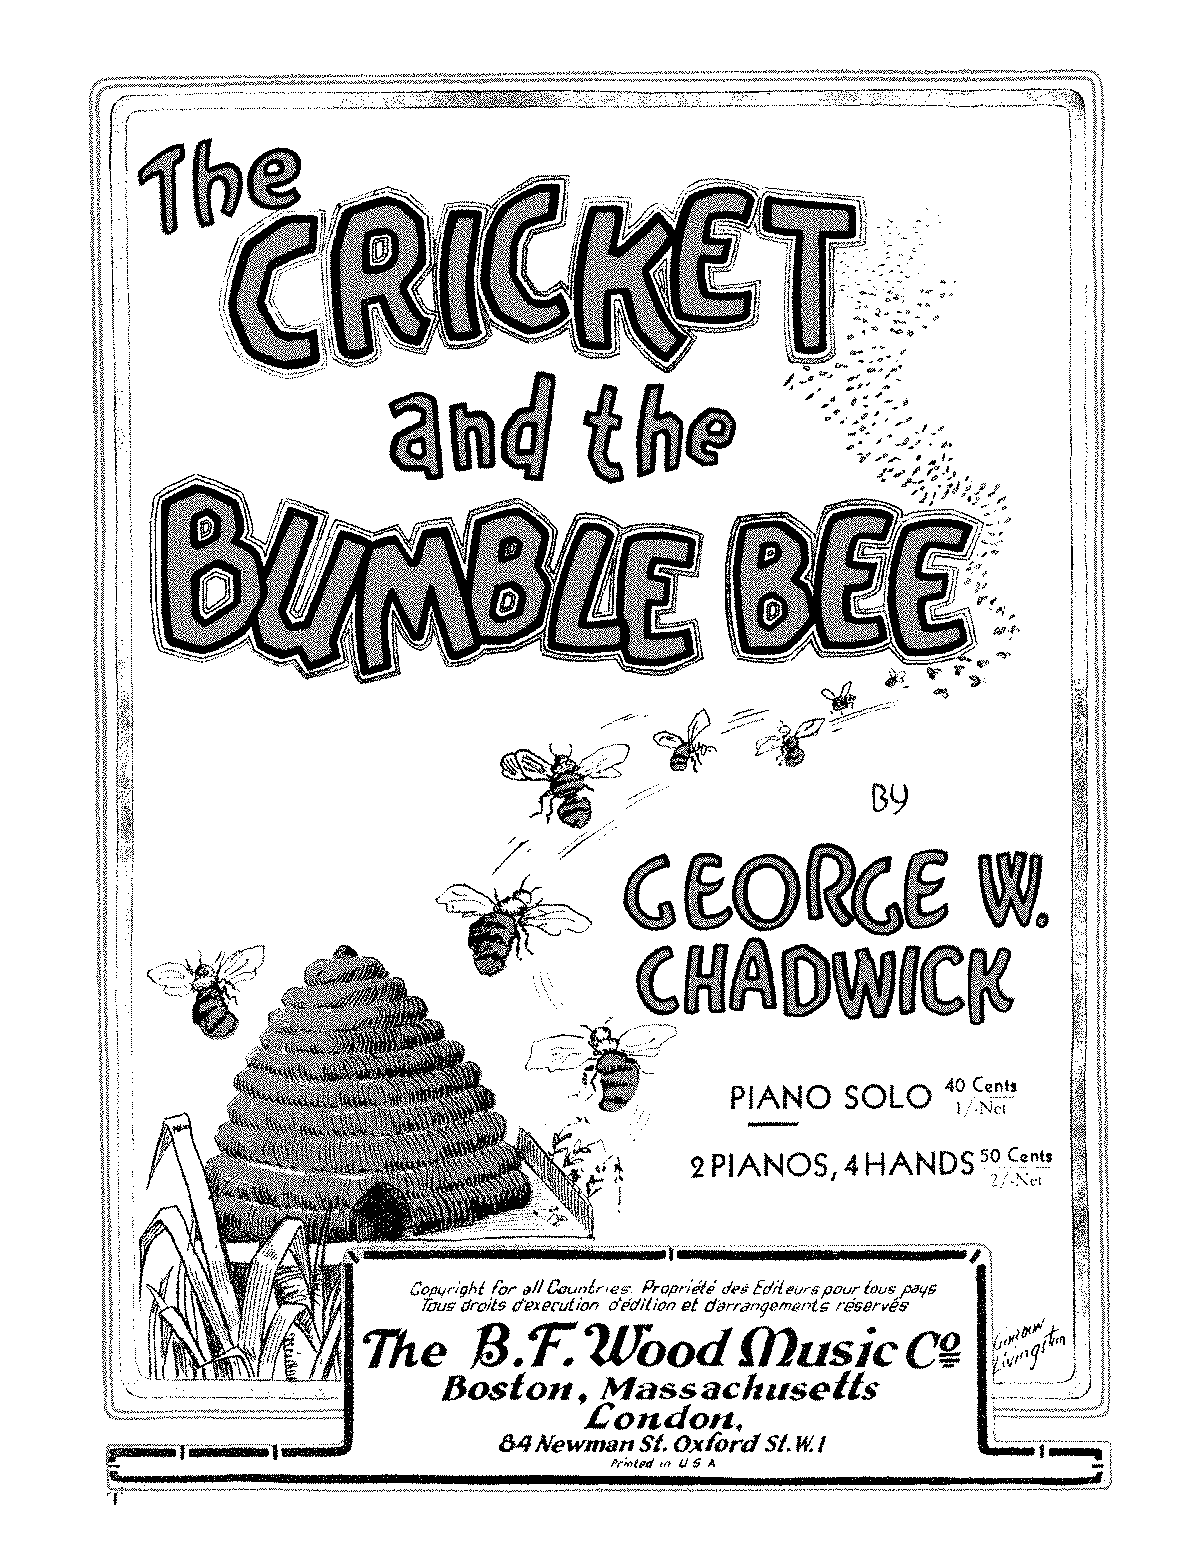 PMLP143121-The Cricket and the Bumblebee-Chadwick wood01563.pdf